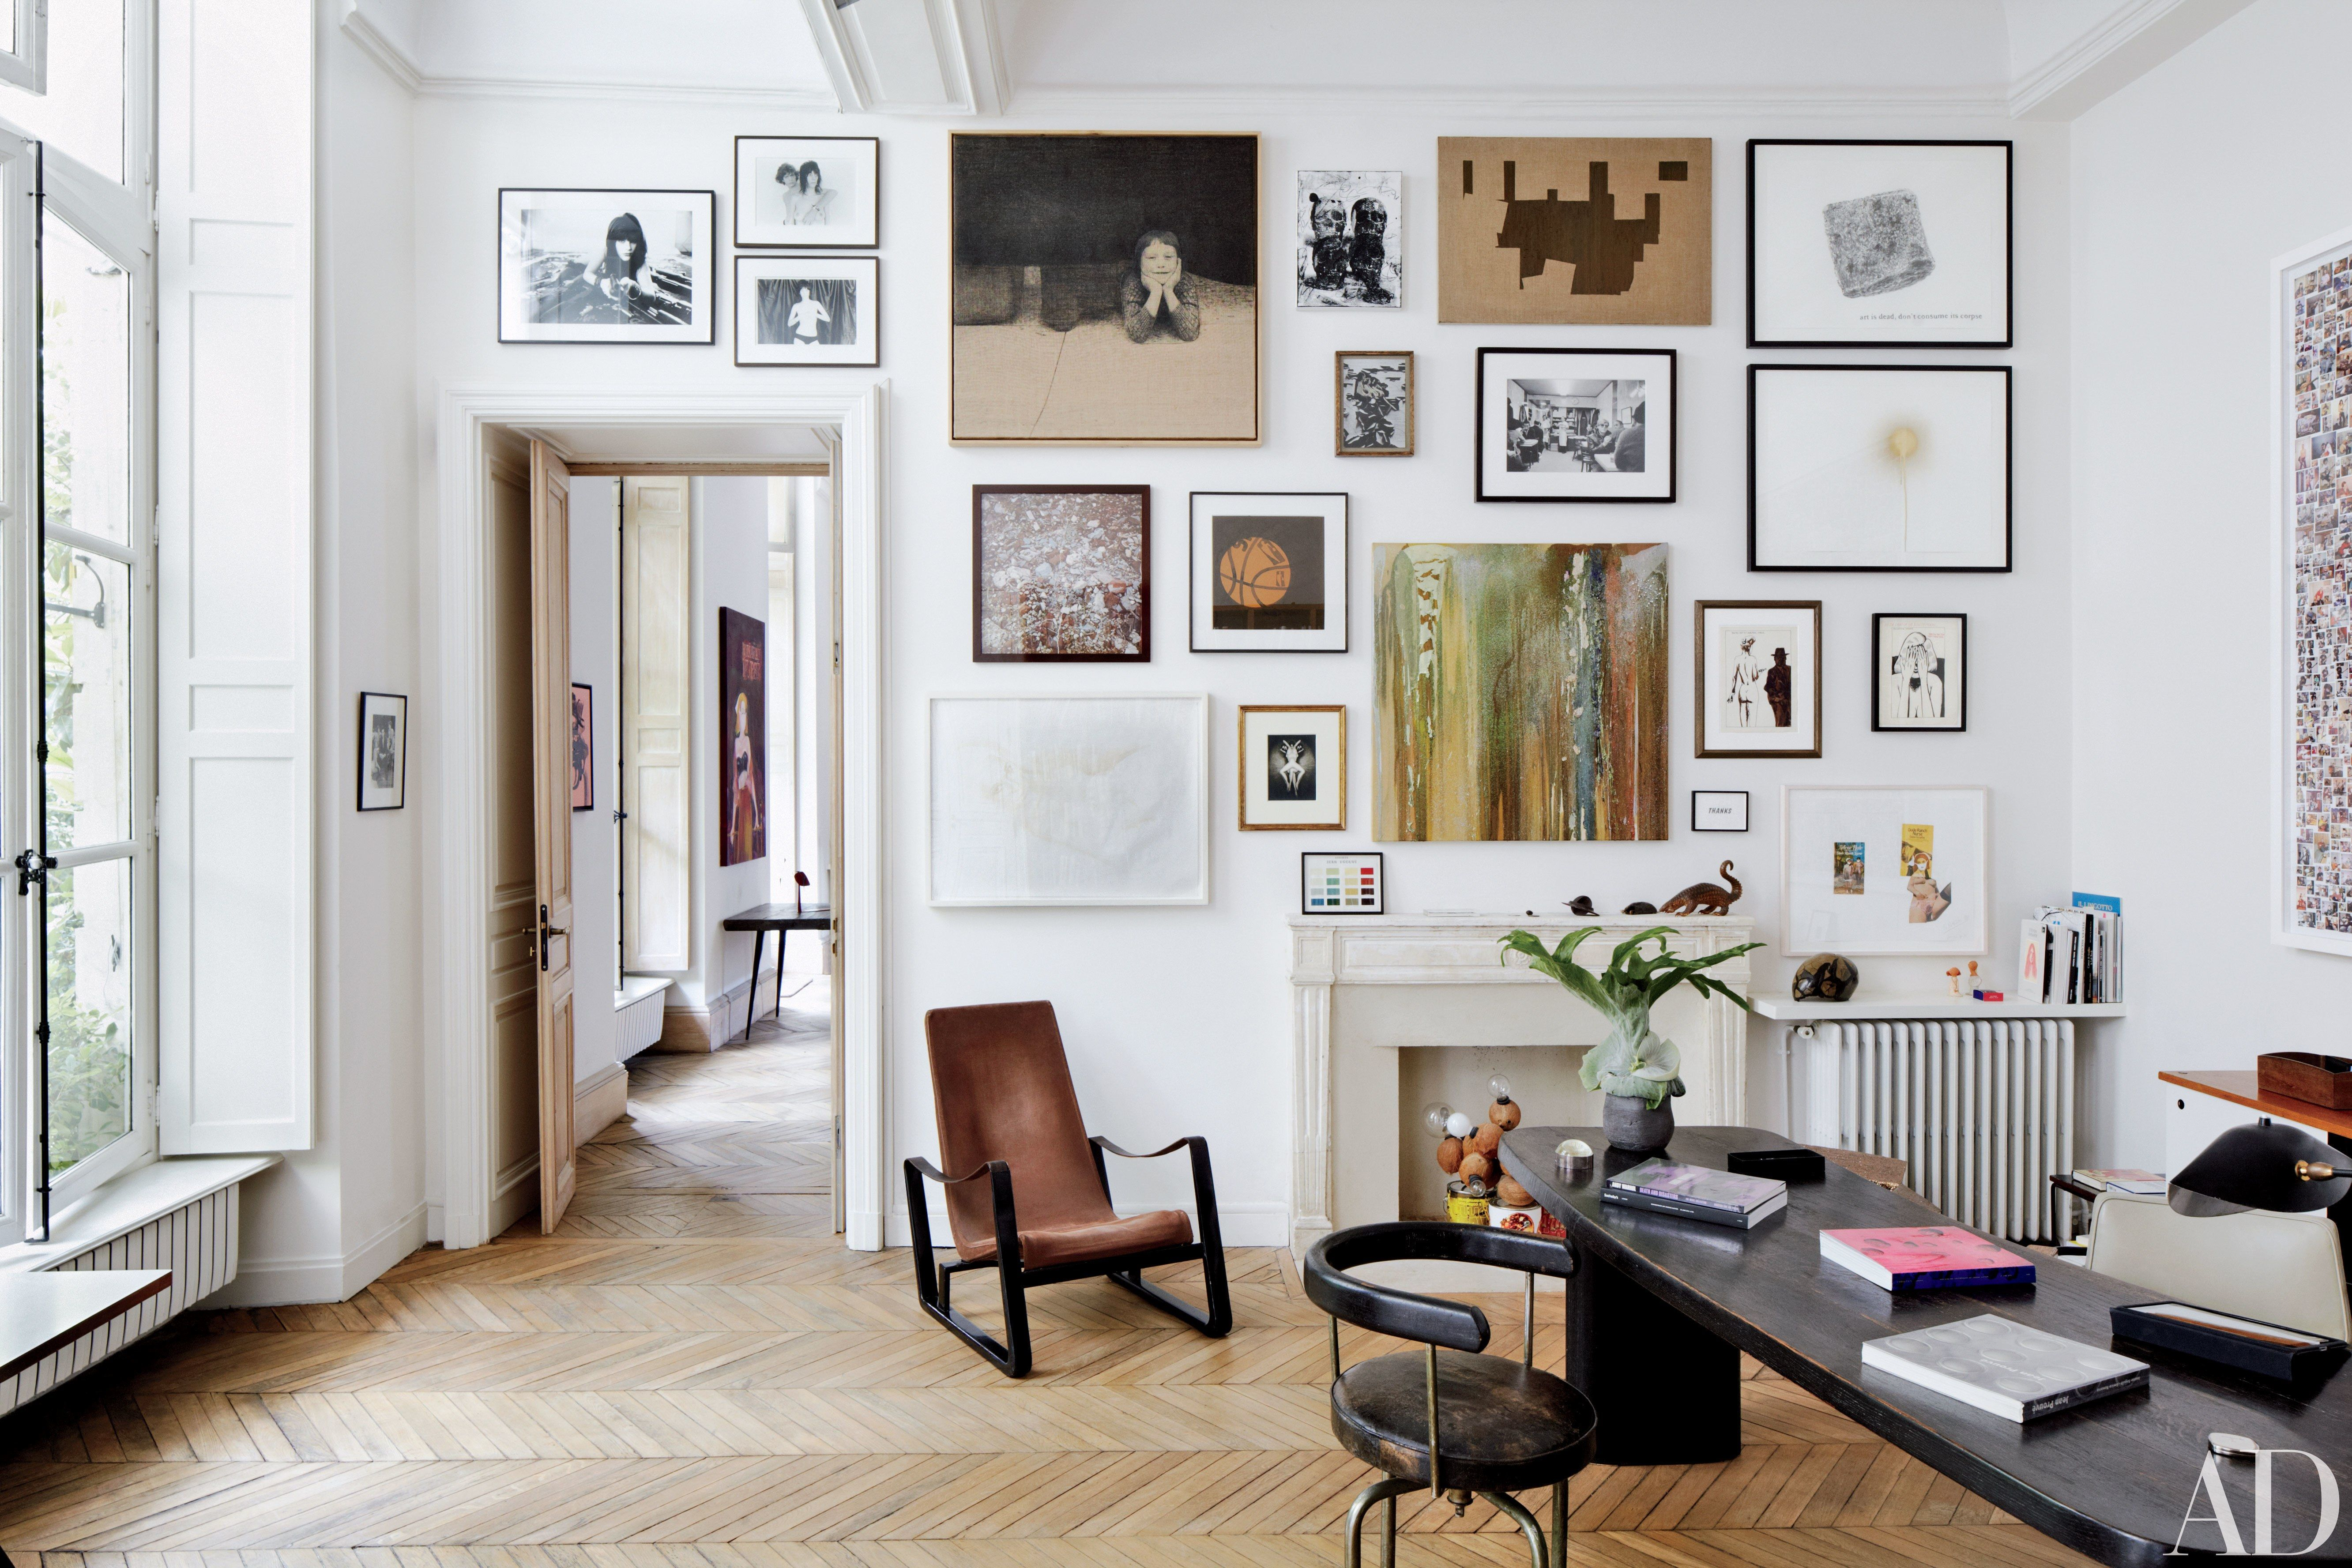 Artworks Get Maximum Impact with SalonStyle Walls in 2019